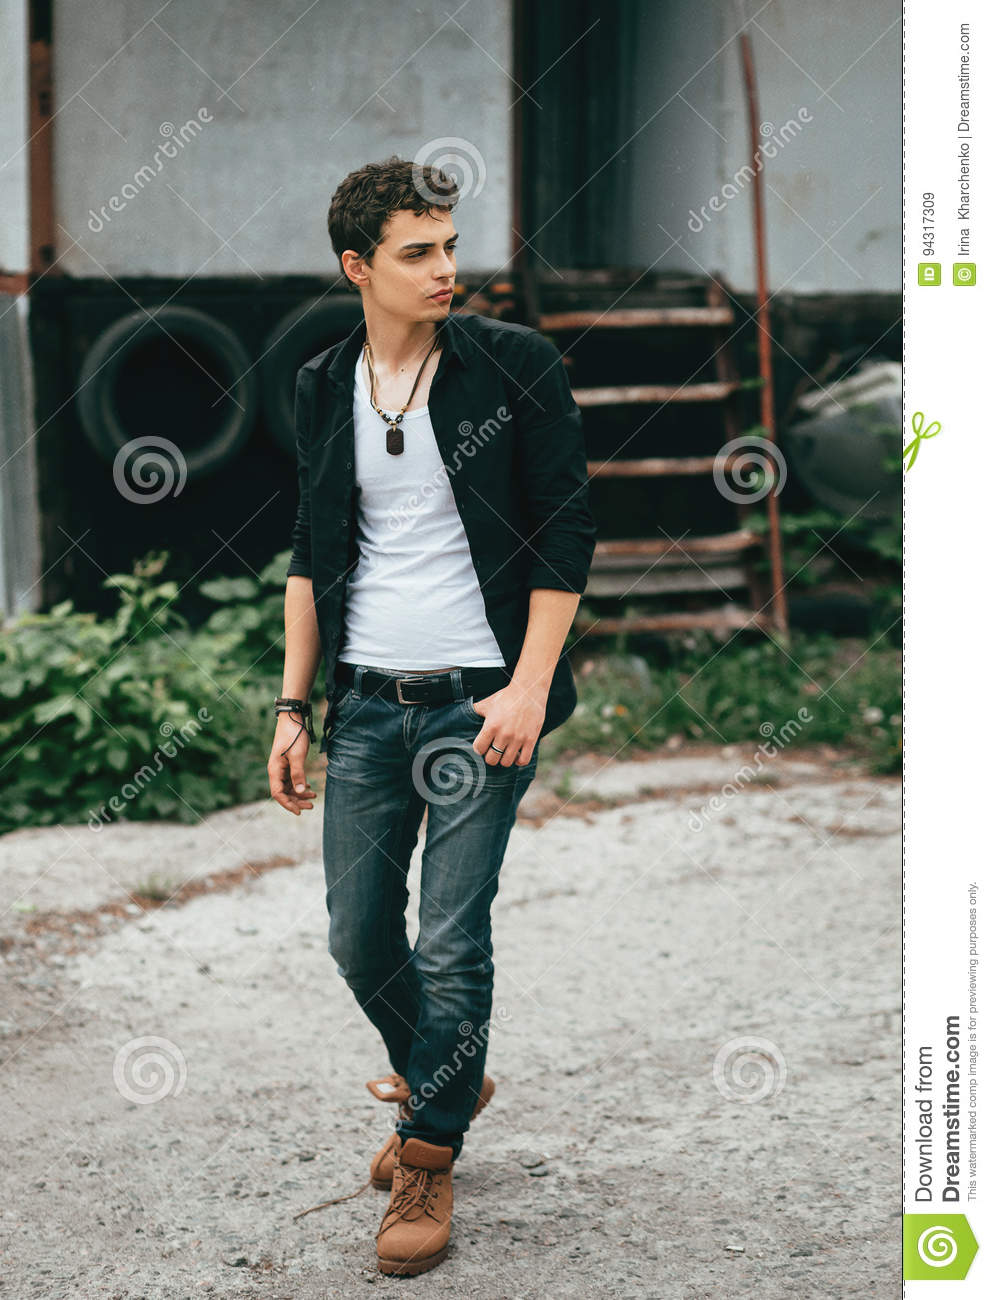 To acquire Style Rock clothing men picture trends